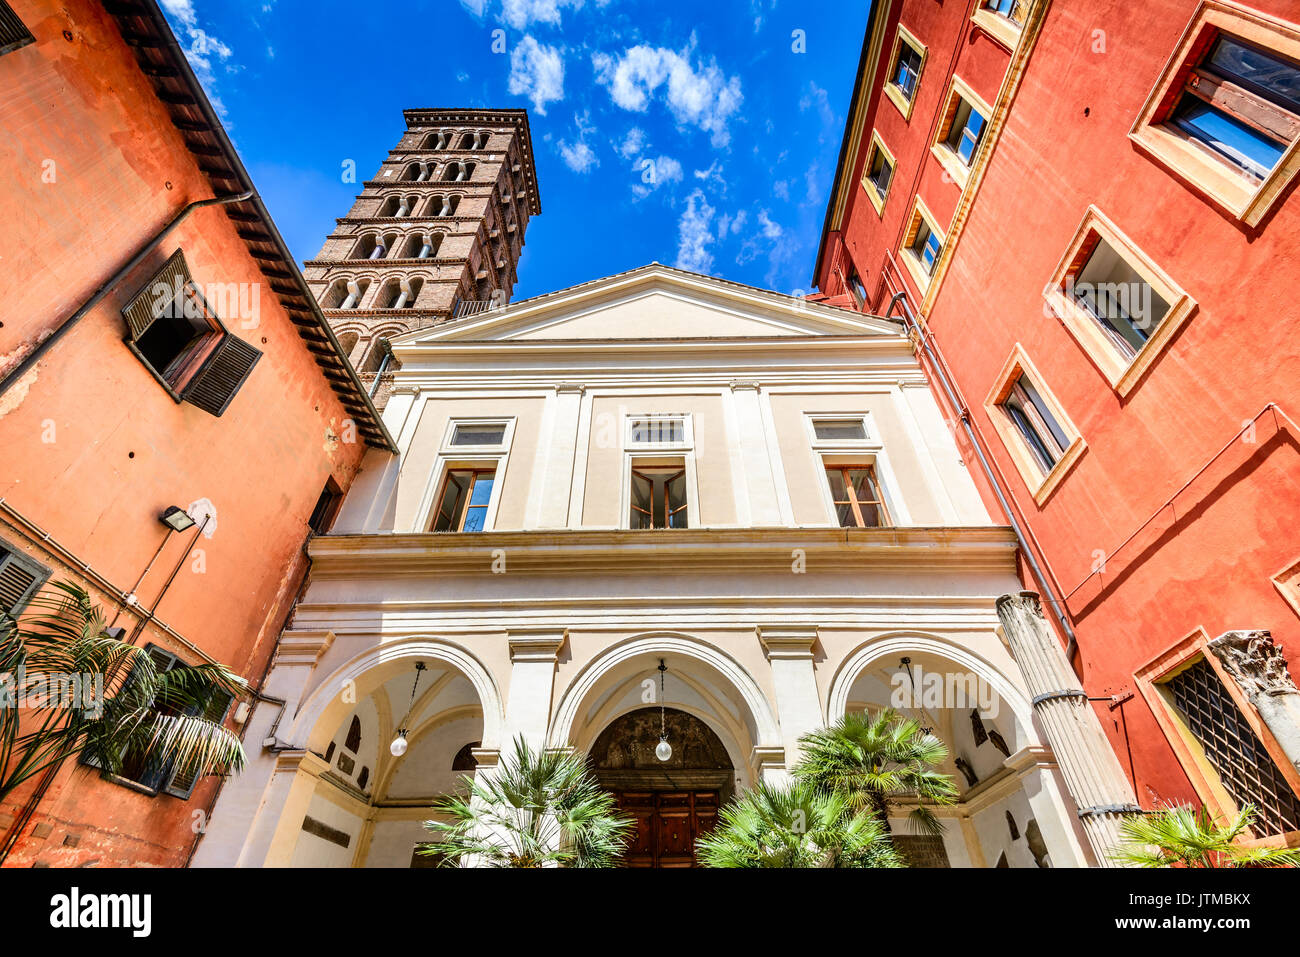 Rome, Italy. Church San Silvestro in Capite, built in 8th century  dedicated to Pope Saint Sylvester. - Stock Image